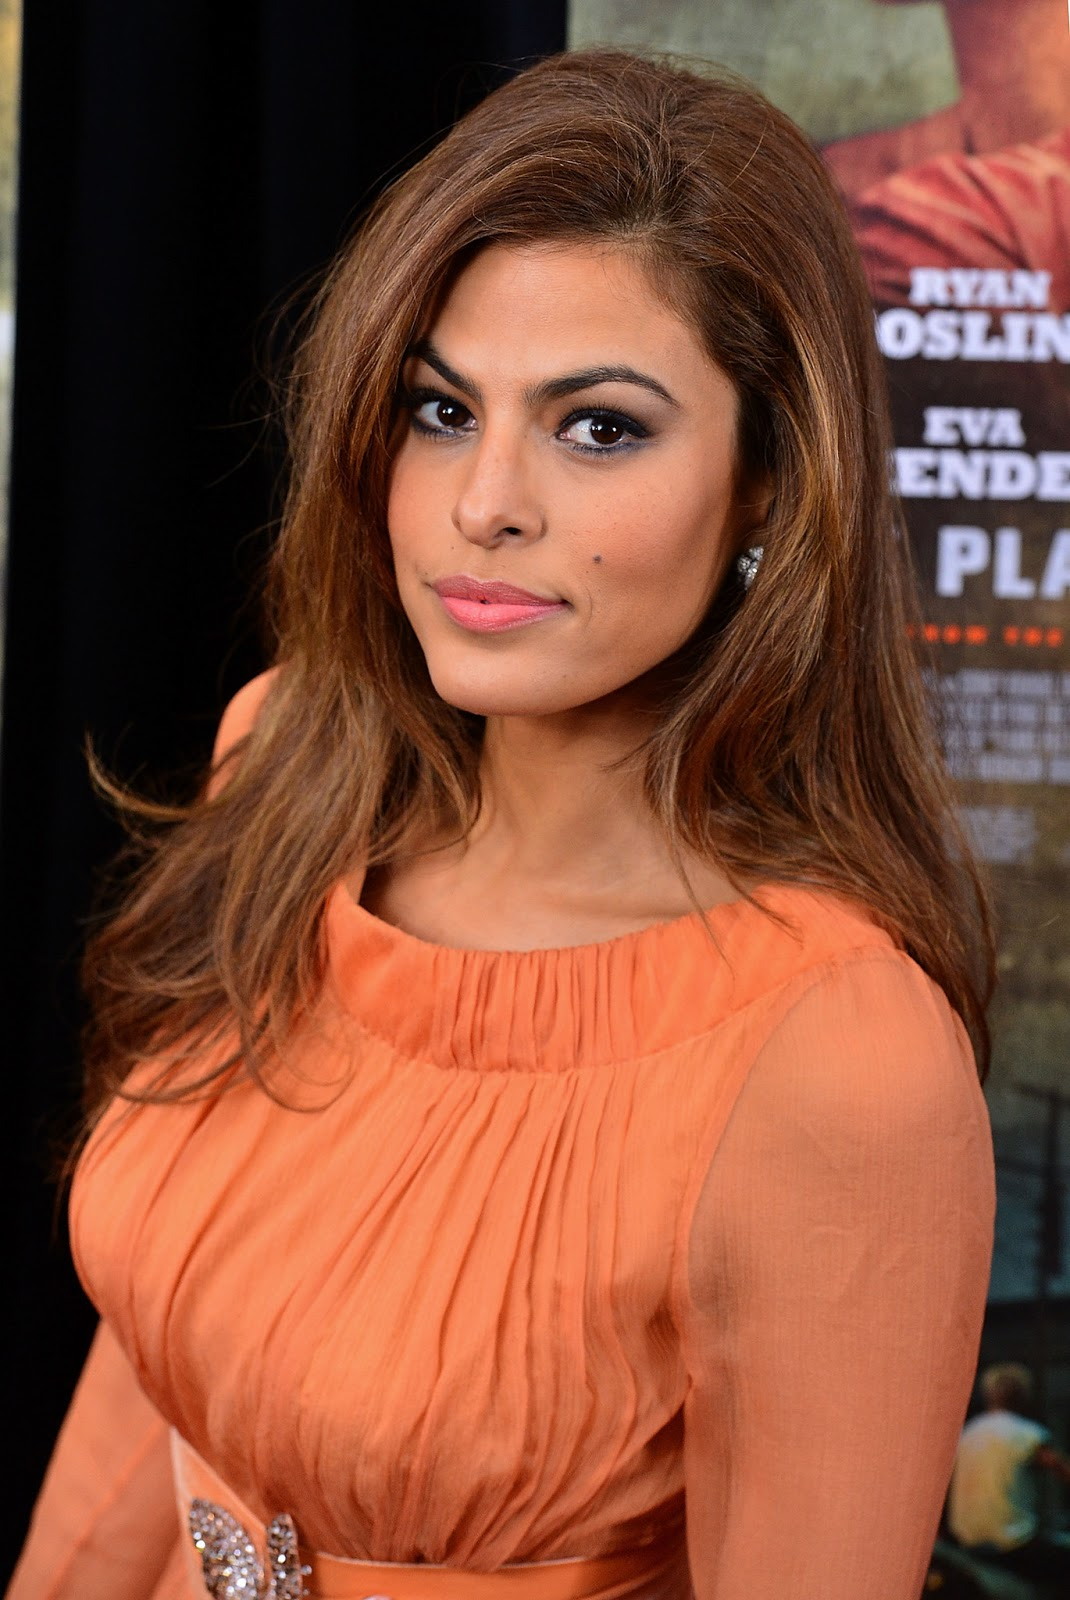 Eva mendes hair hitch